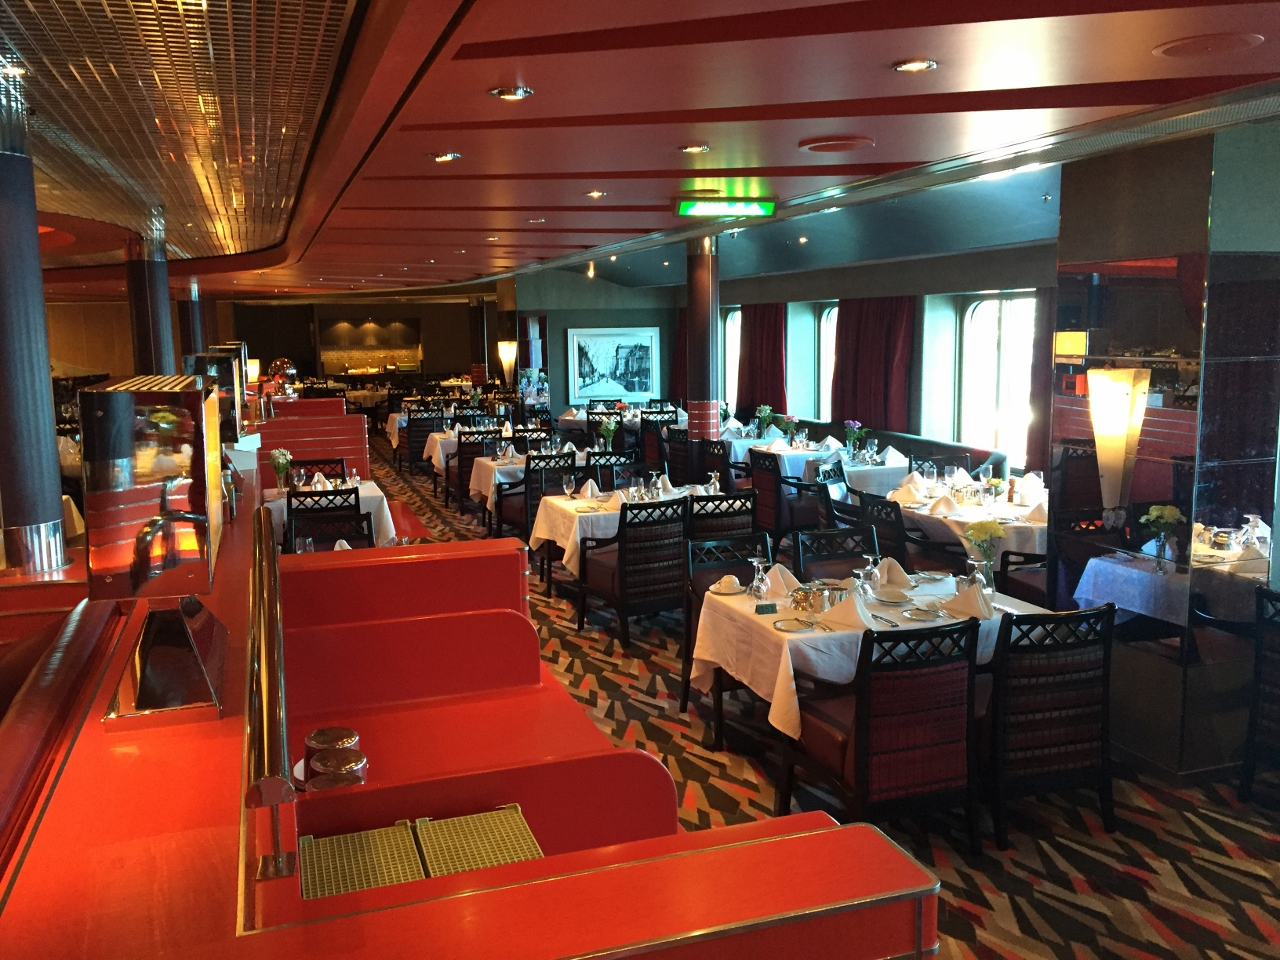 The decoration of the Manhattan Dining Room on MS Nieuw Amsterdam.